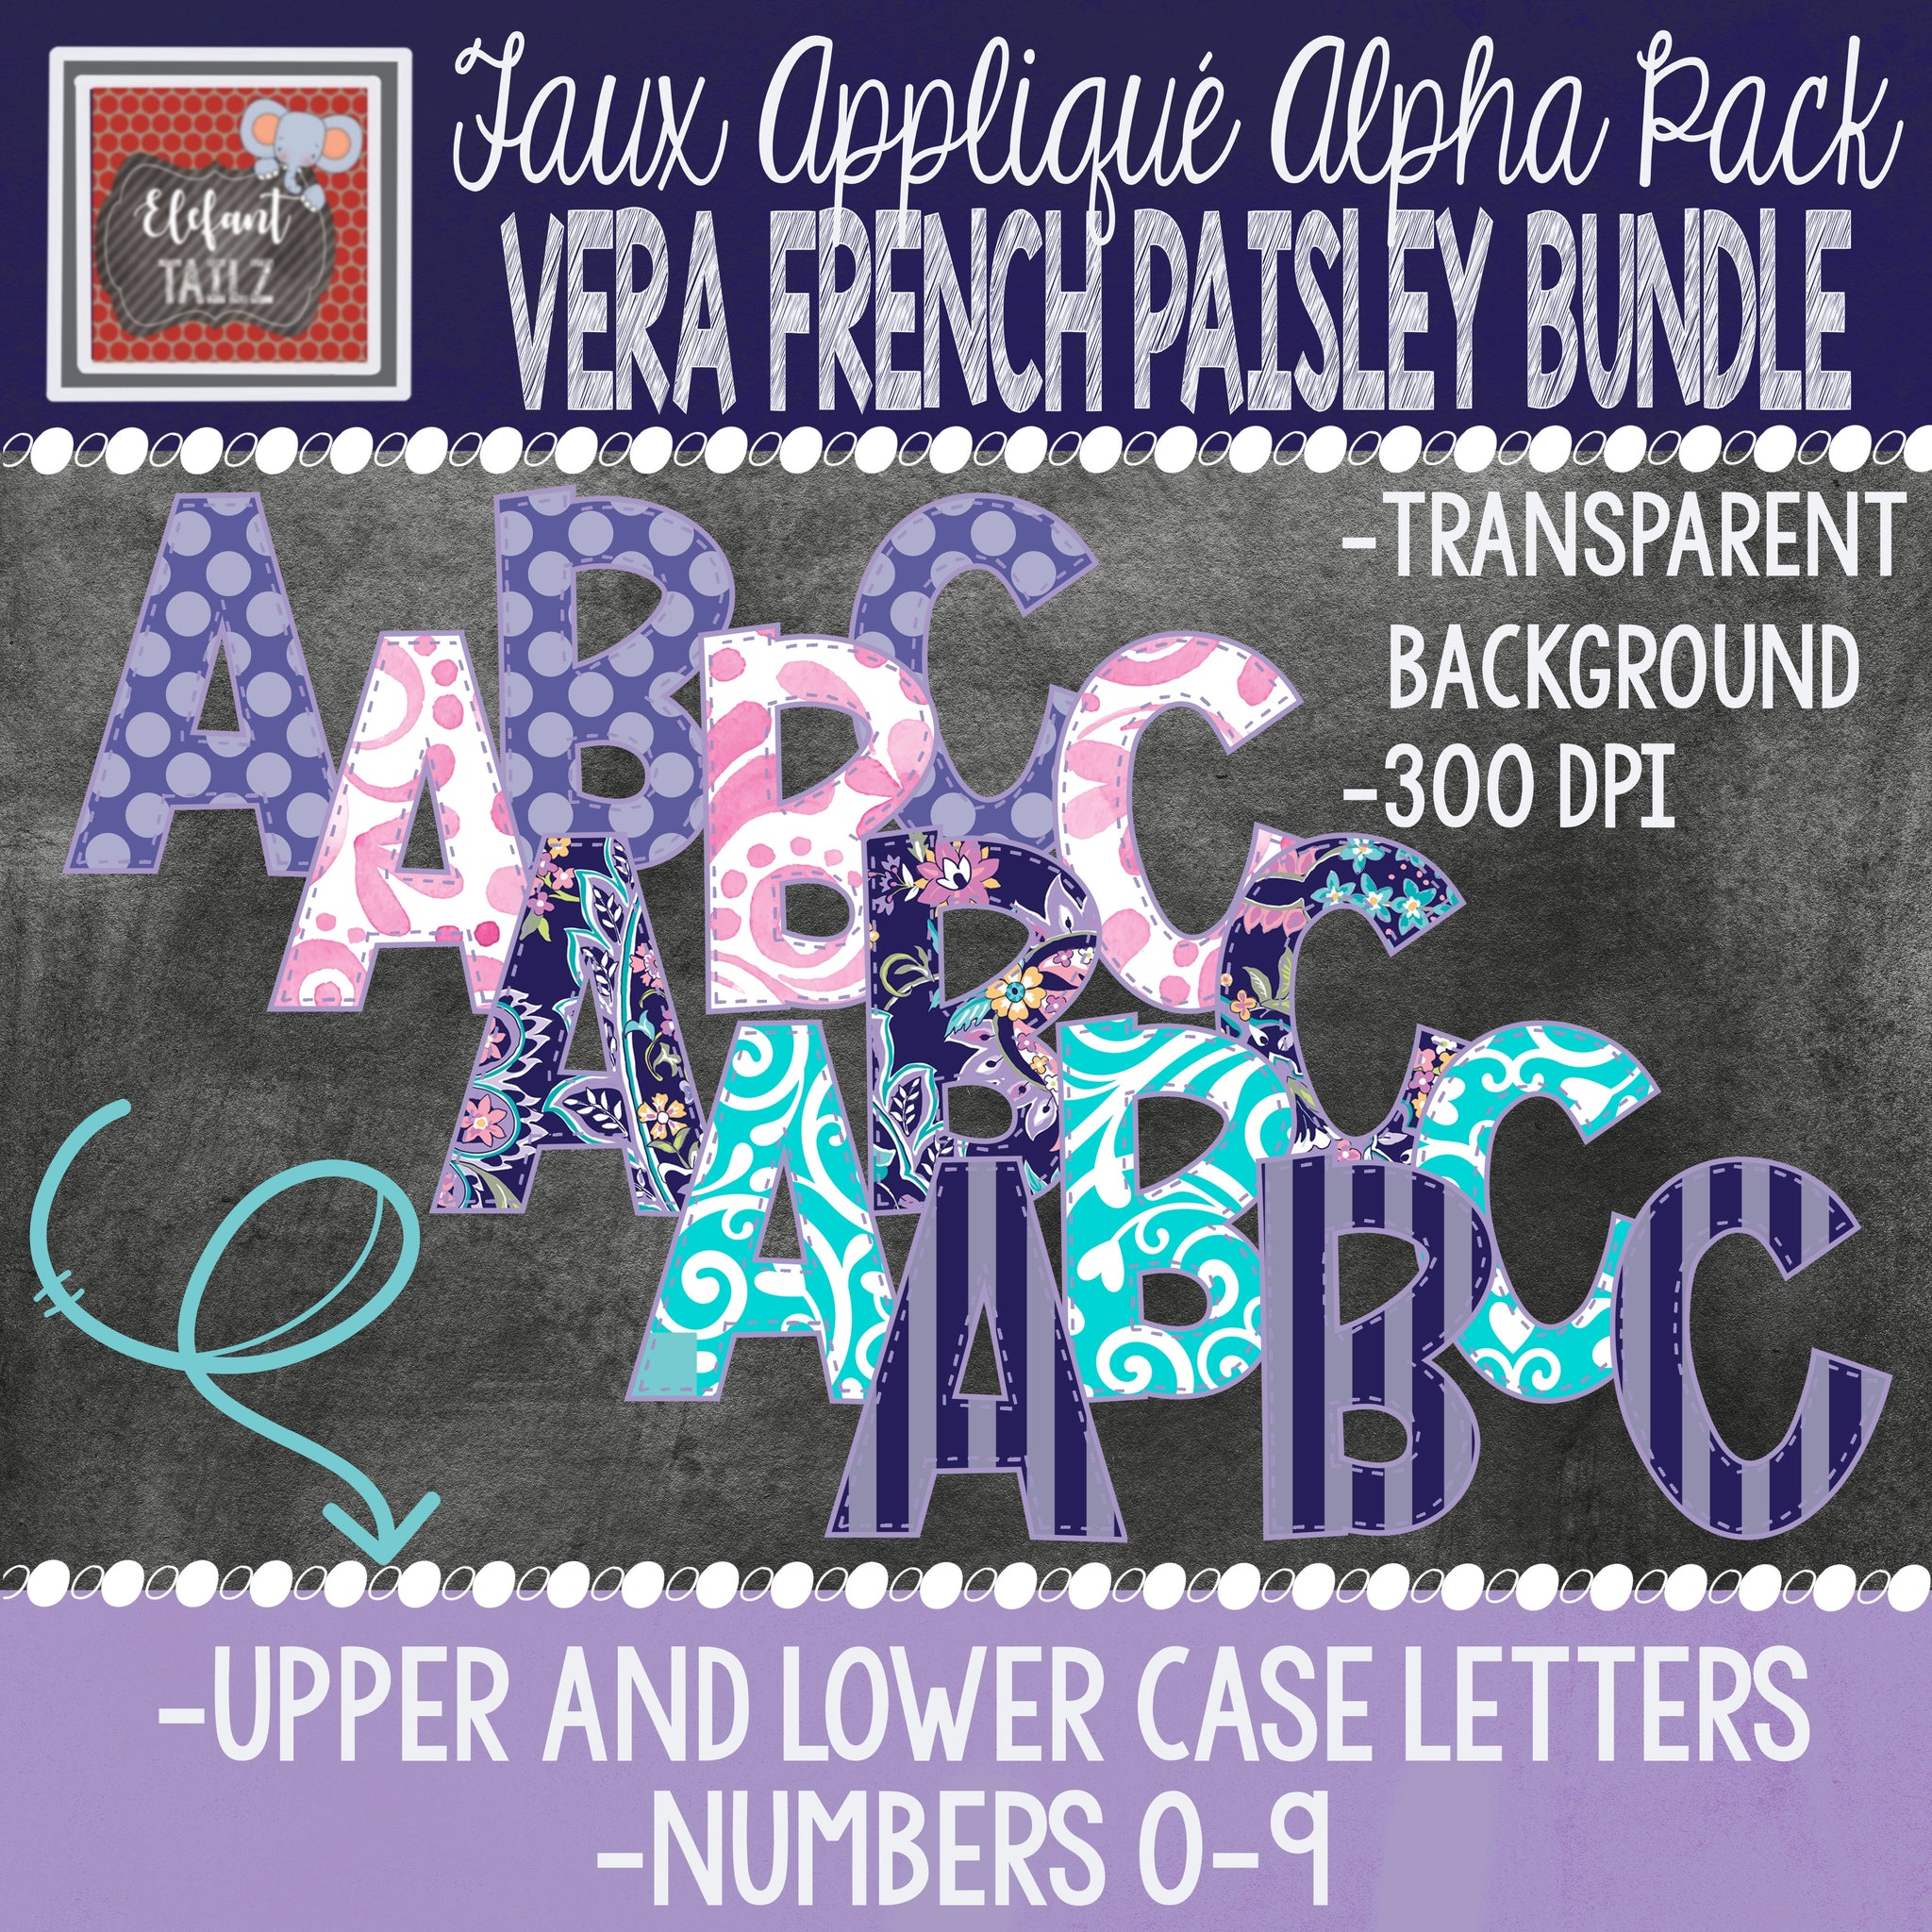 Alpha & Number Pack - Vera French Paisley BUNDLE